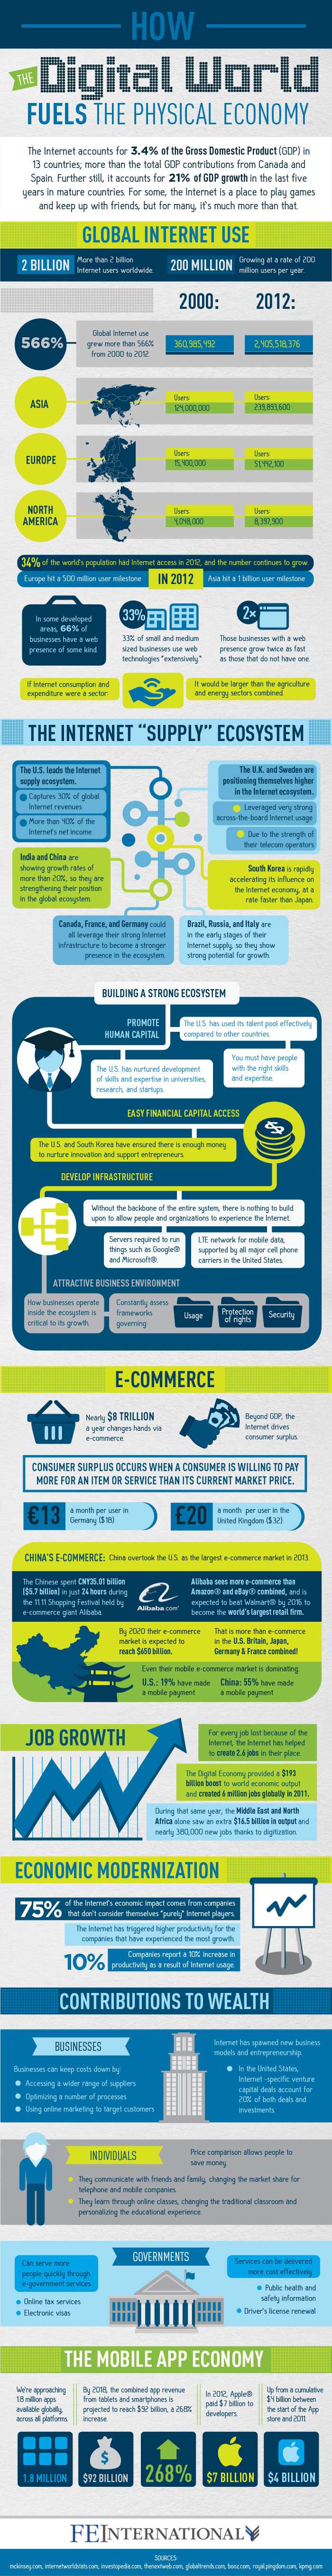 internet economic impact infographic